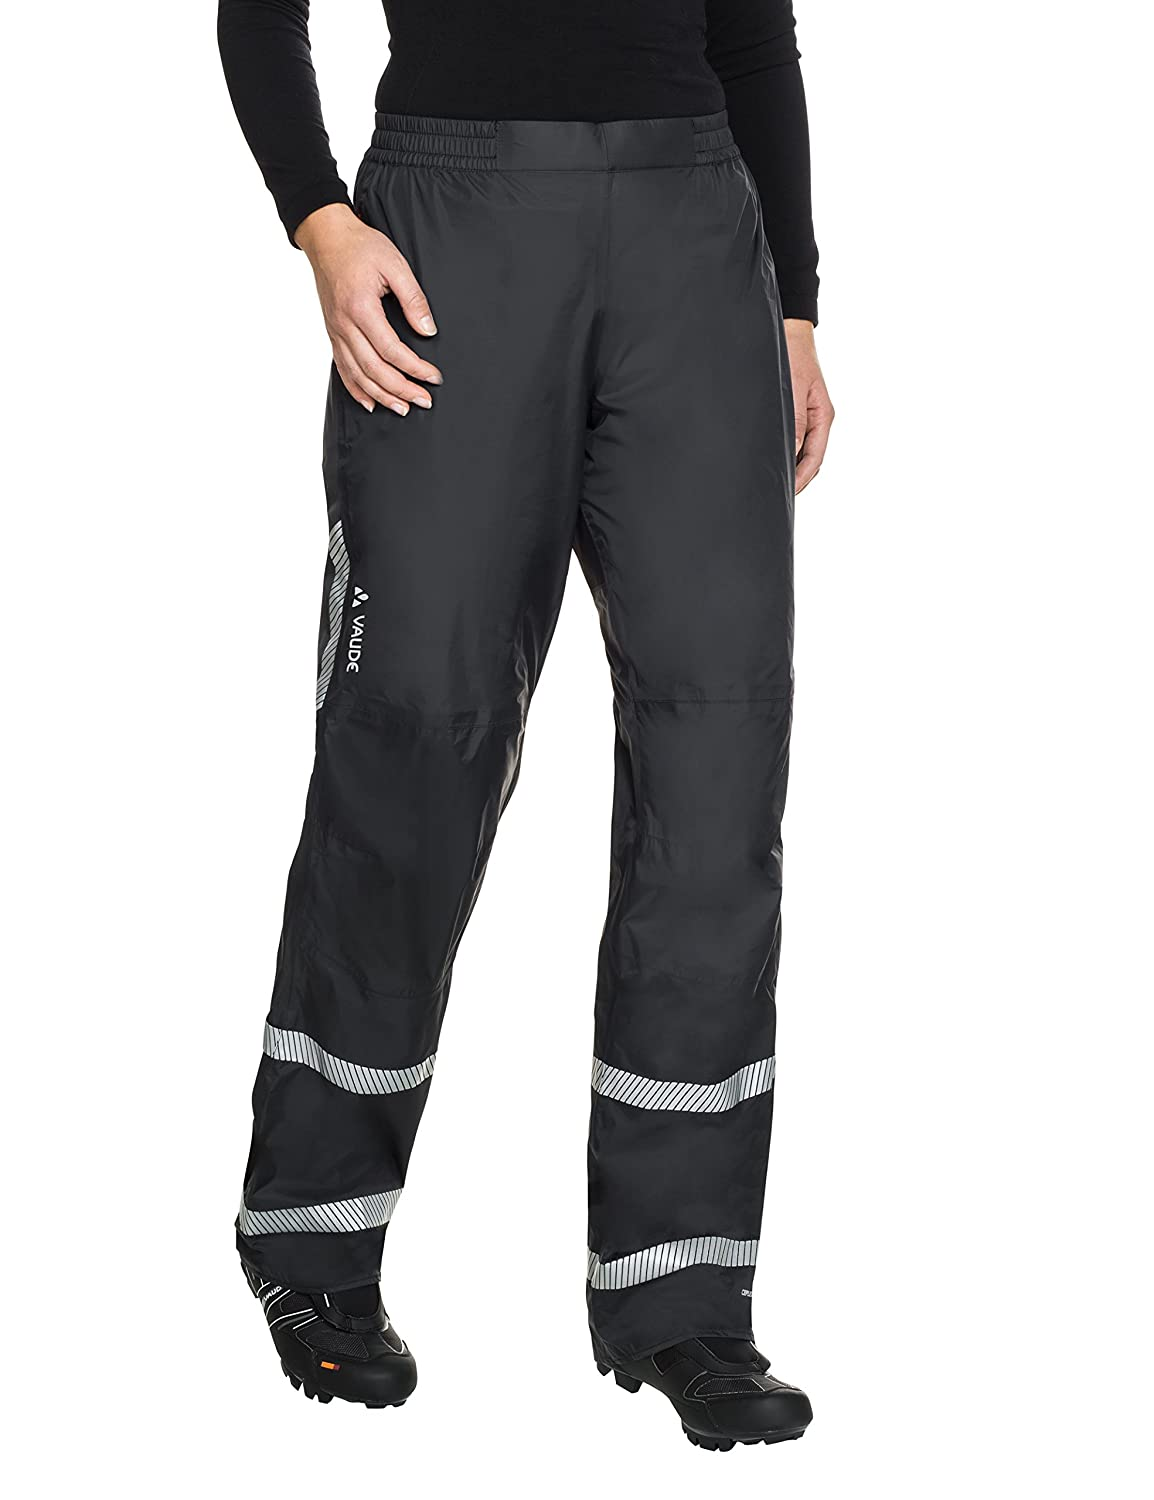 Black Vaude Women's Uminum Performance Pants